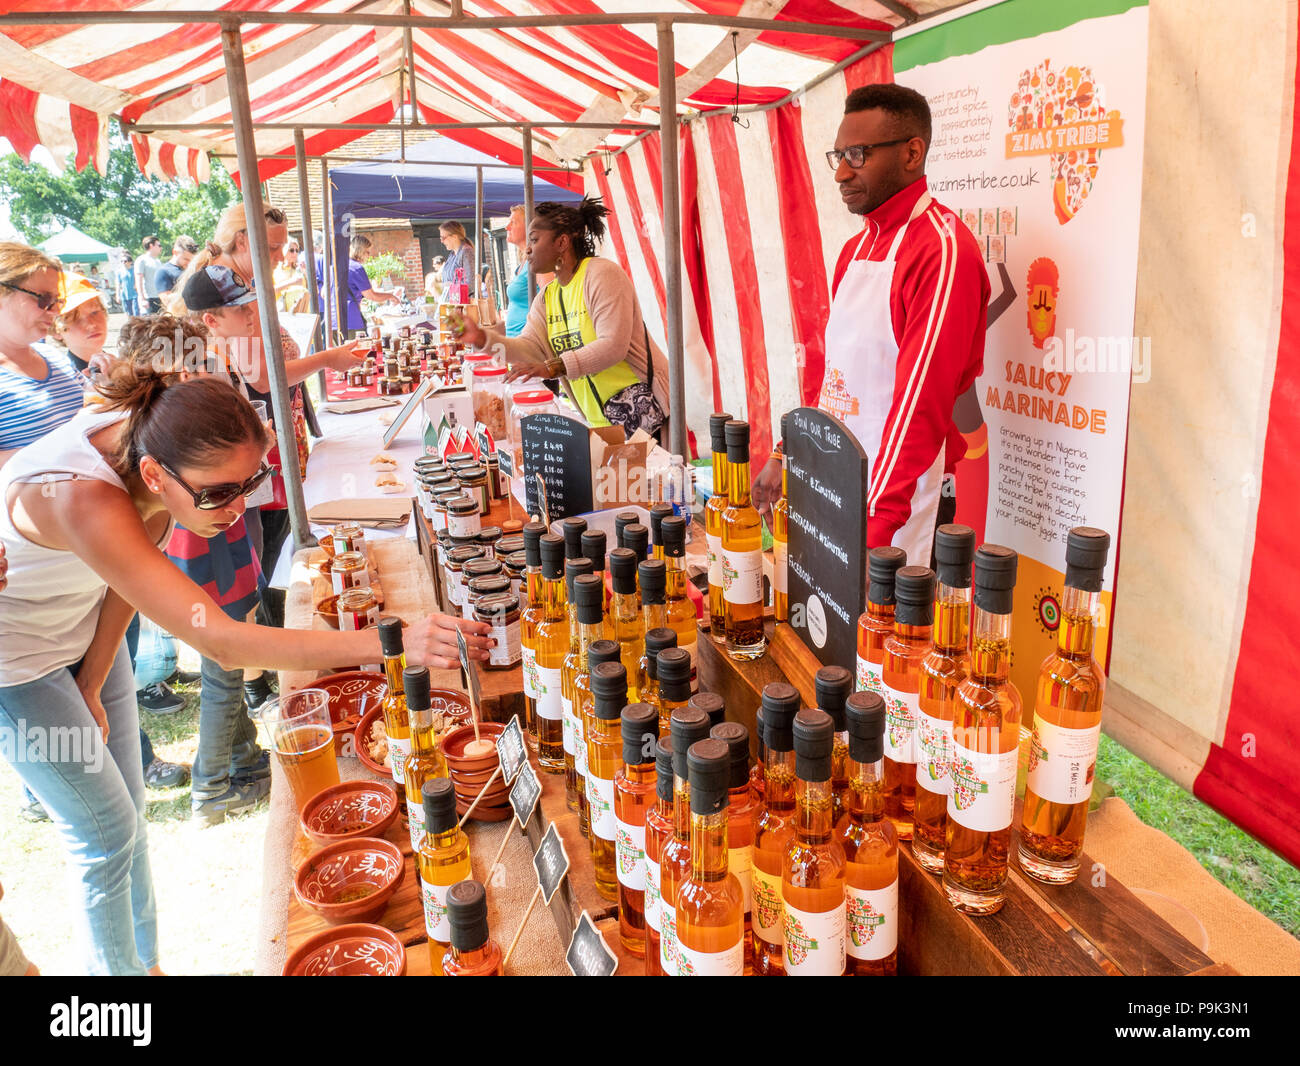 Stall selling specialty oils and marinades at a farmers market in Forty Hall, Enfield, London, UK - Stock Image